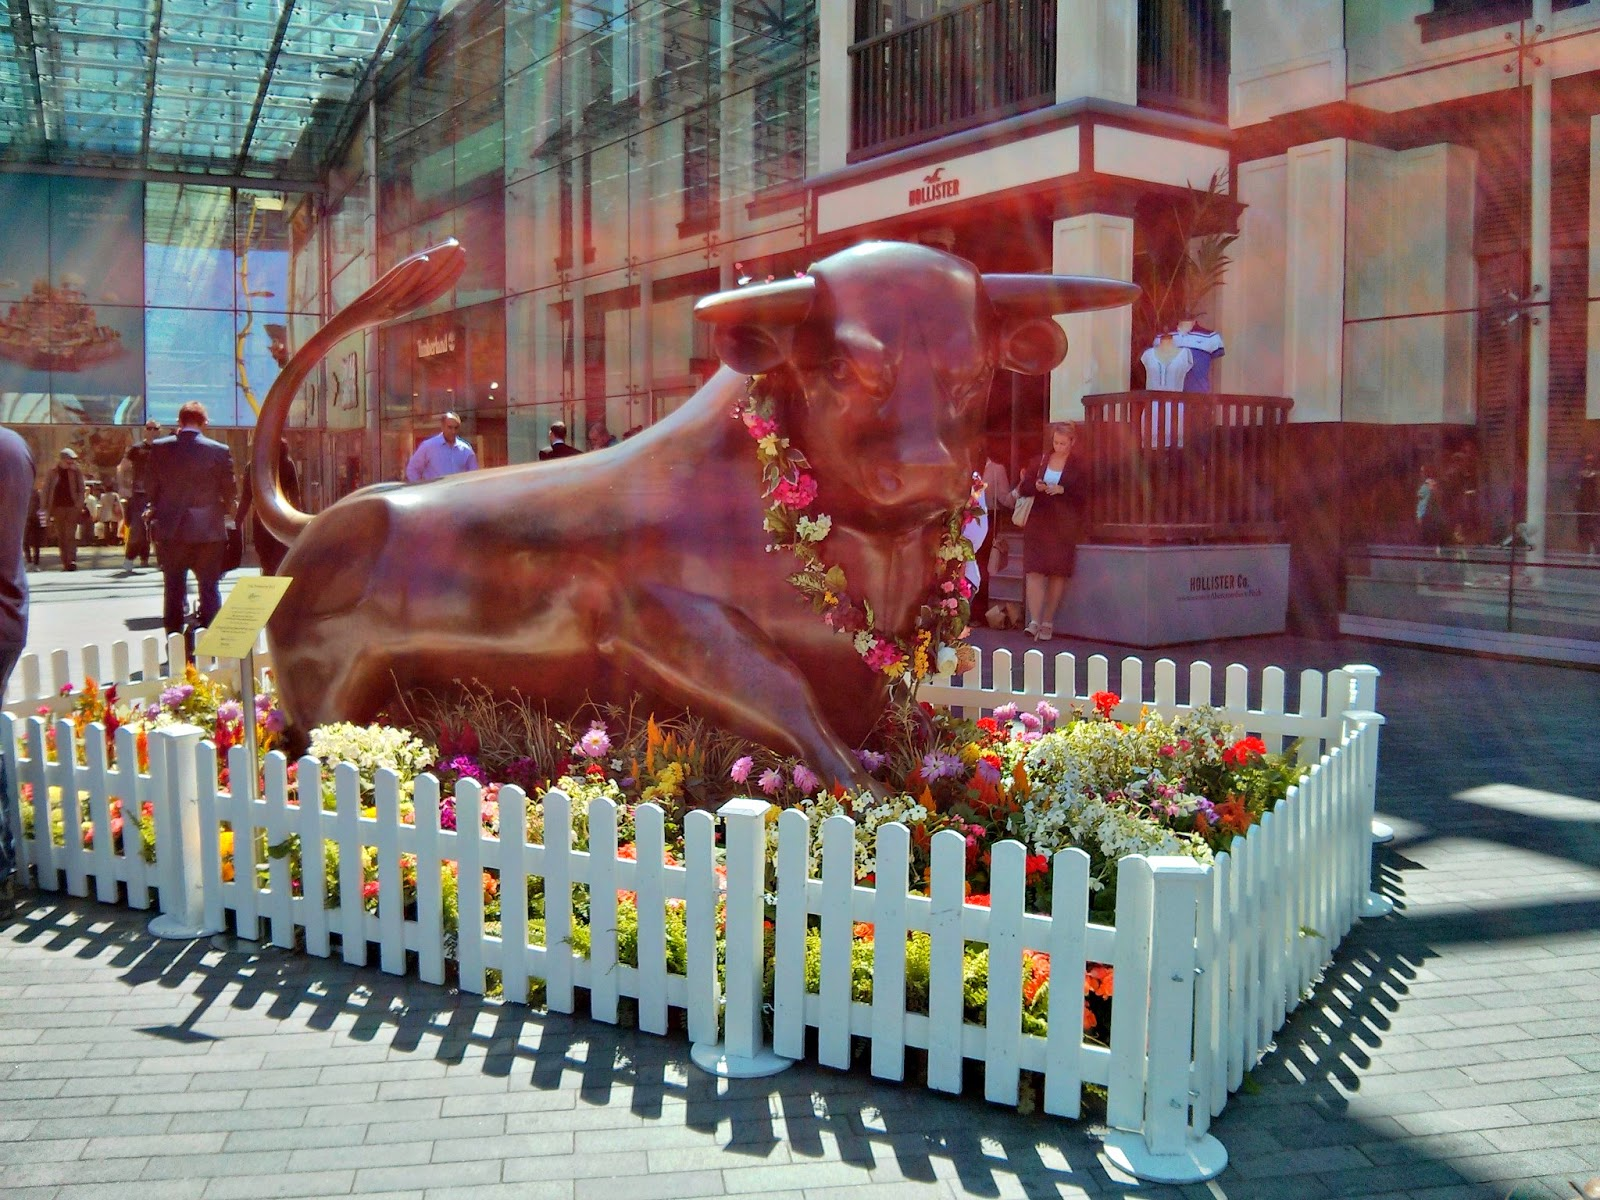 The Bull at the Bullring Fashiob